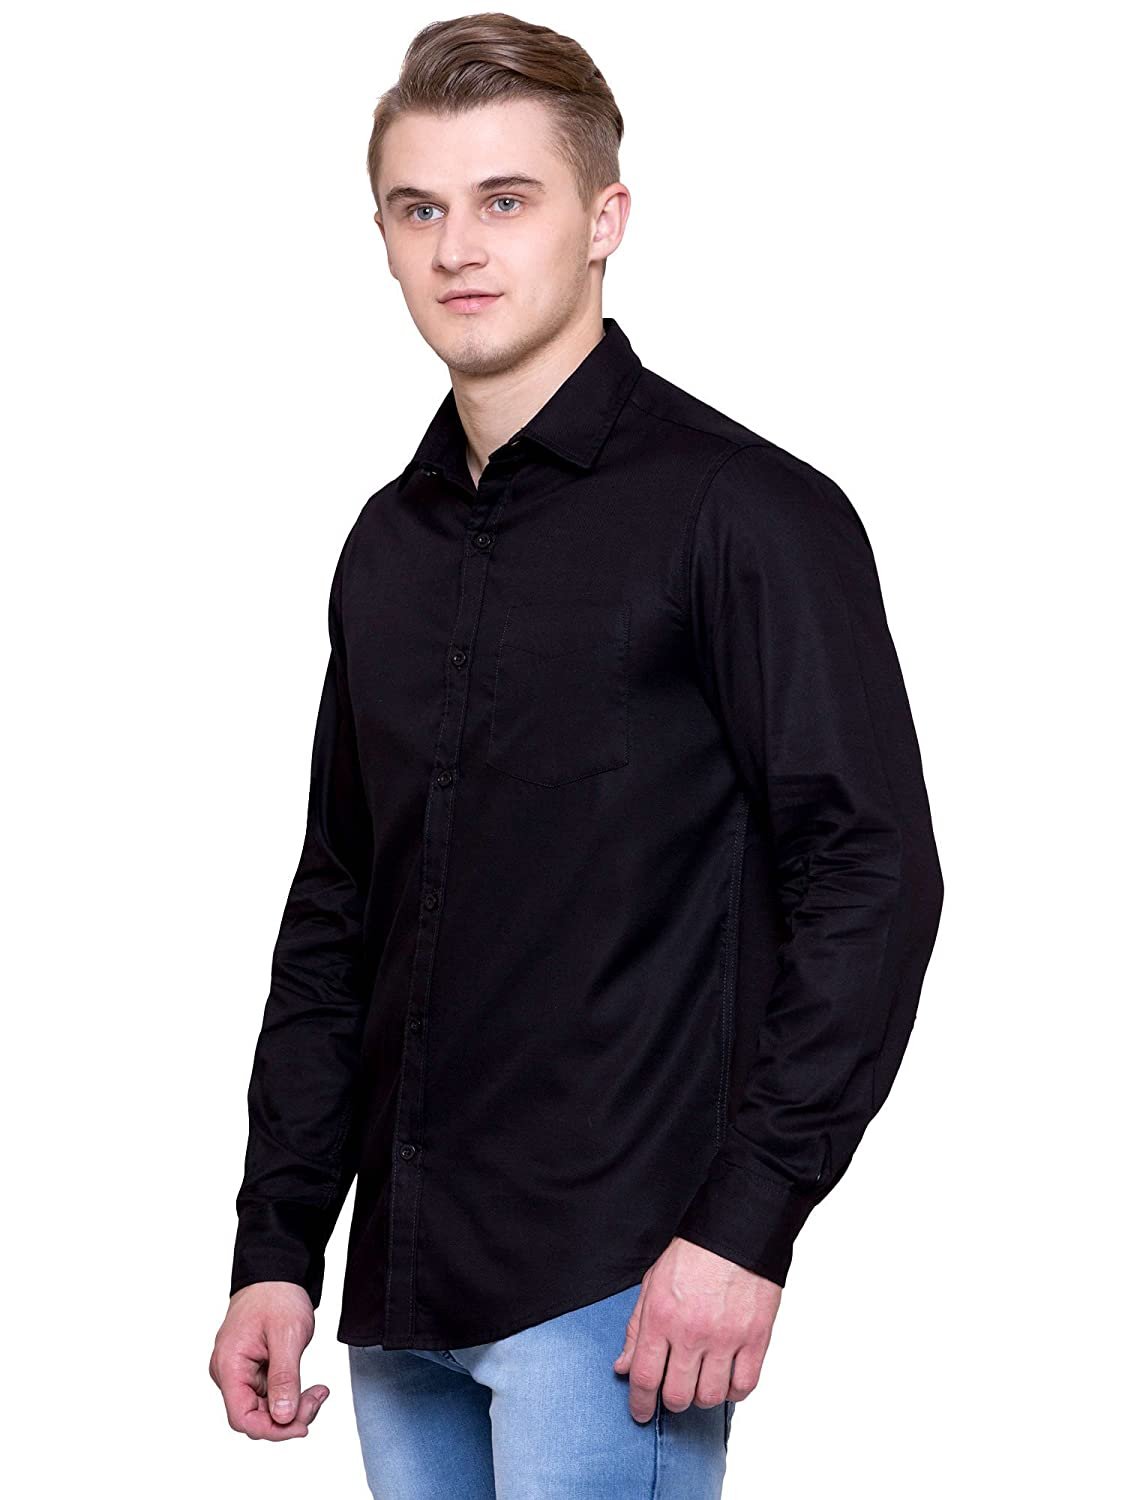 d5cb67dd36 JScottwitchy Men s Pure Cotton Casual Semi Formal Slim Fit Black Shirt   Amazon.in  Clothing   Accessories